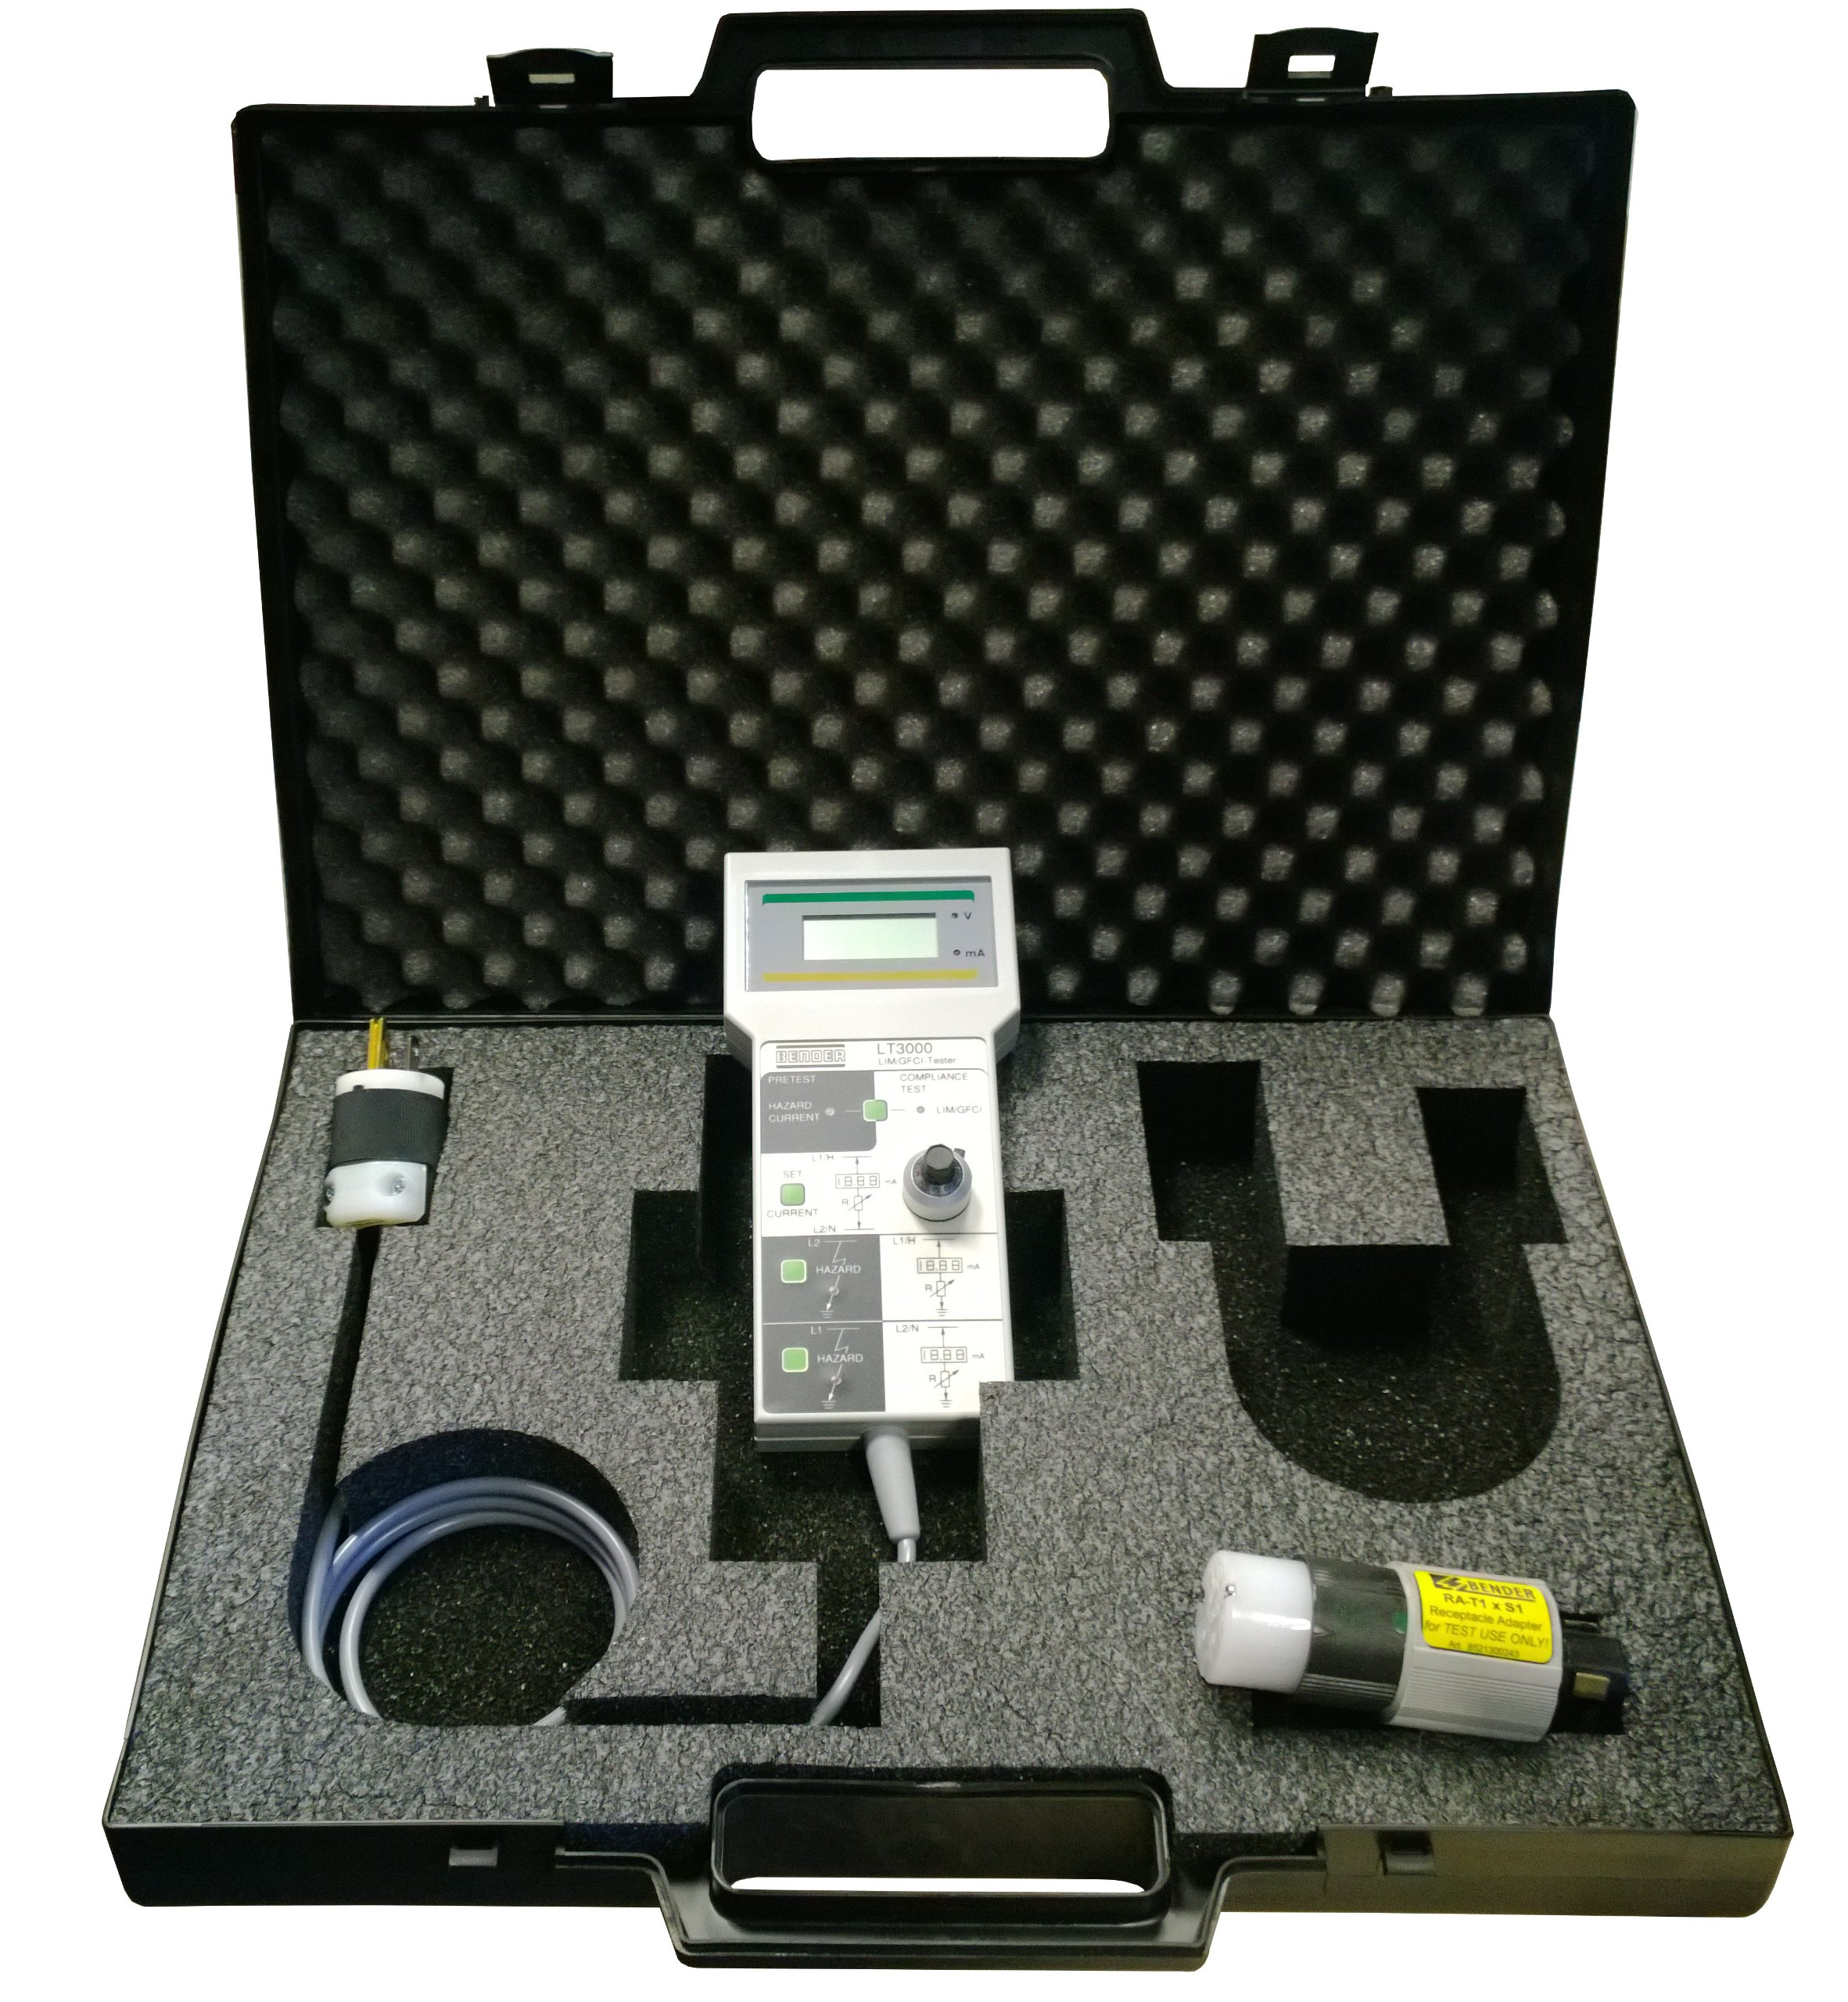 Buy Bender Lt 3000 Kit For Line Isolation Monitor Lim And Ground How To Test Fault Circuit Interrupter Gfci